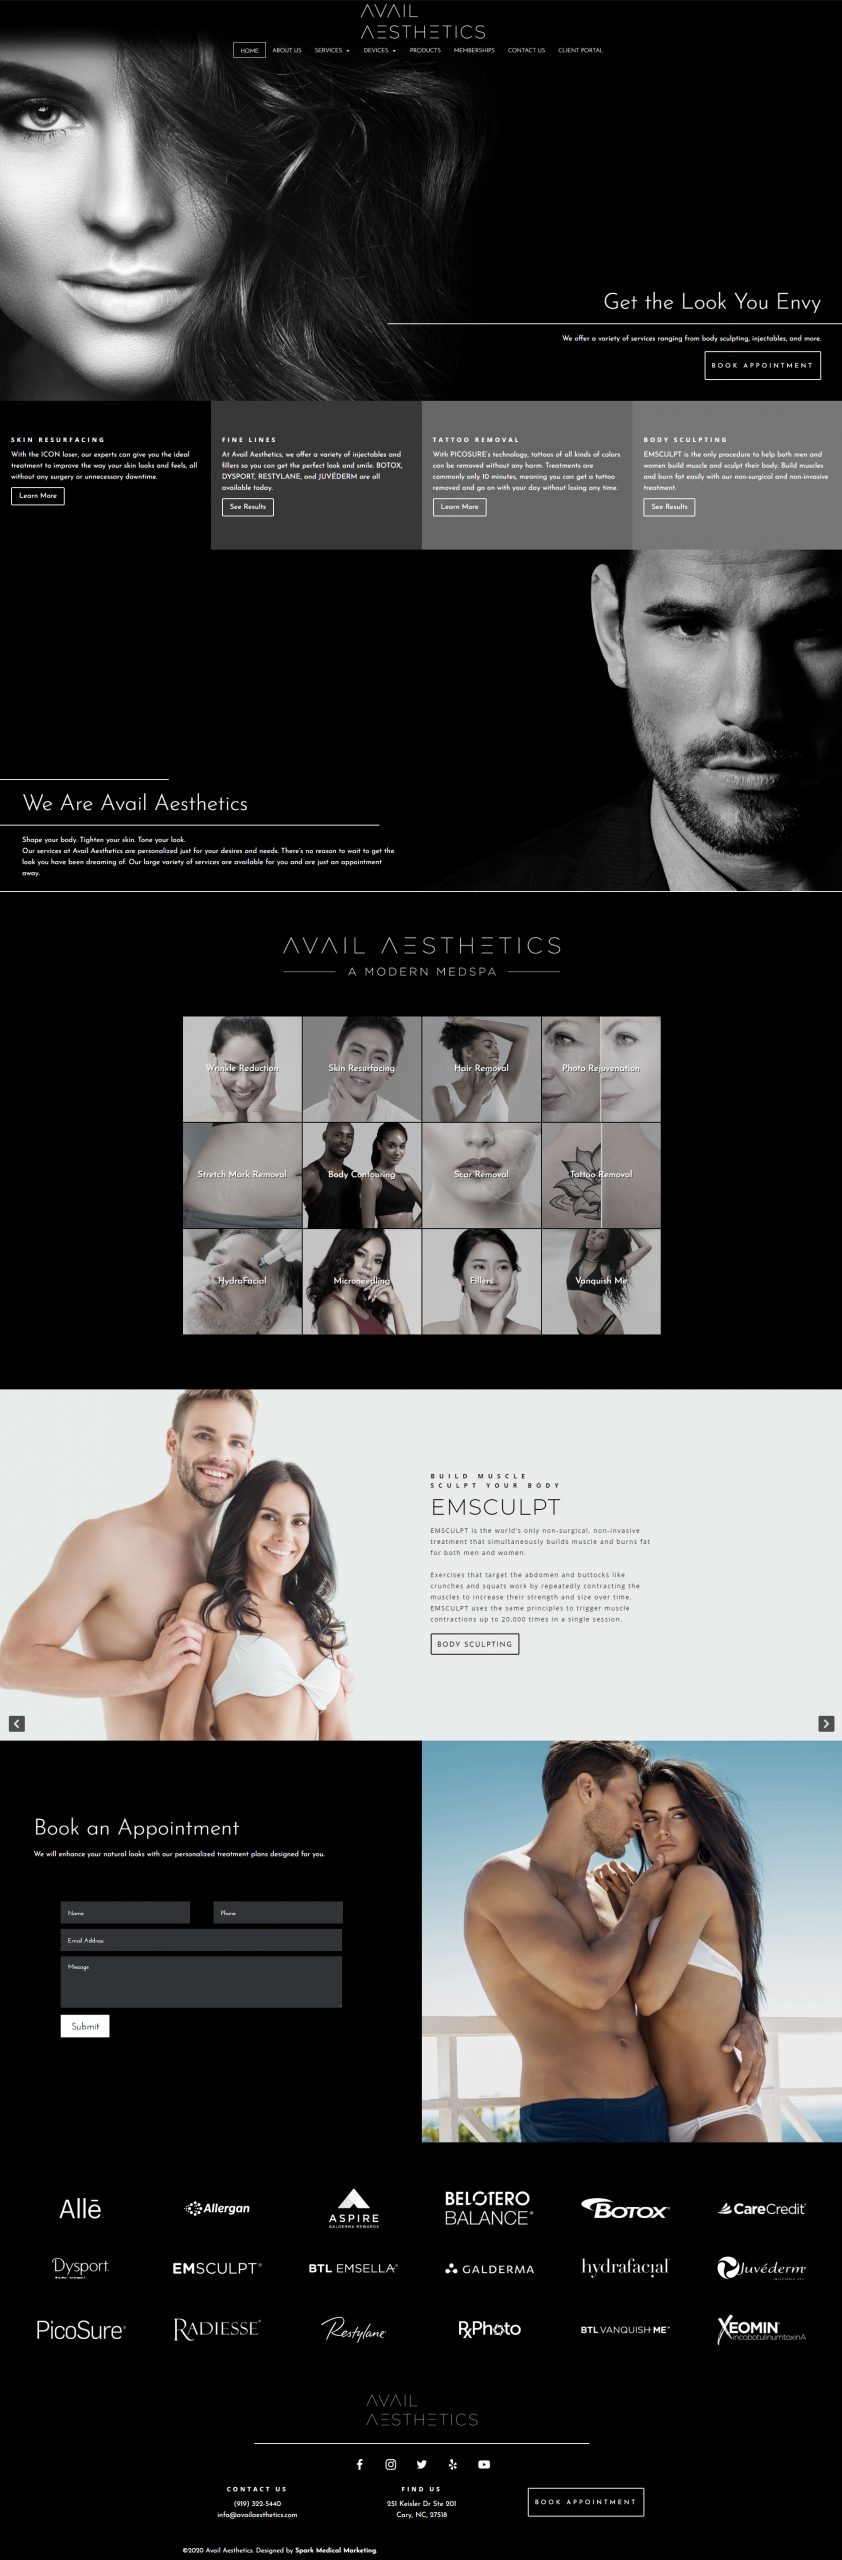 Avail Aesthetics Homepage